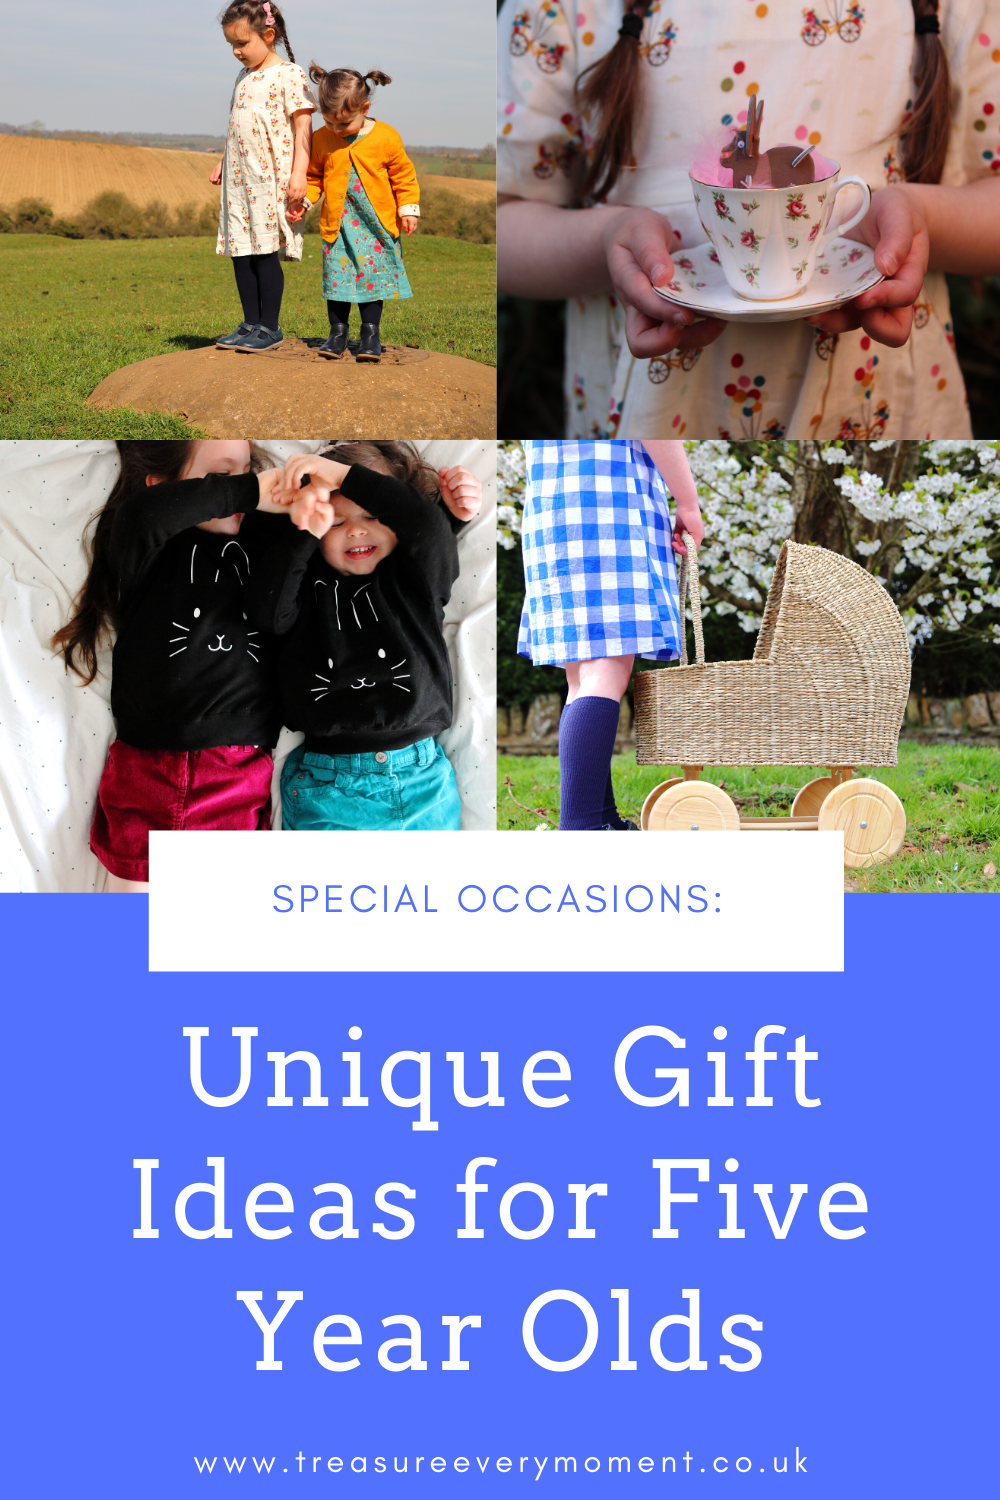 SPECIAL OCCASIONS: Unique Gift Ideas for Five Year Olds